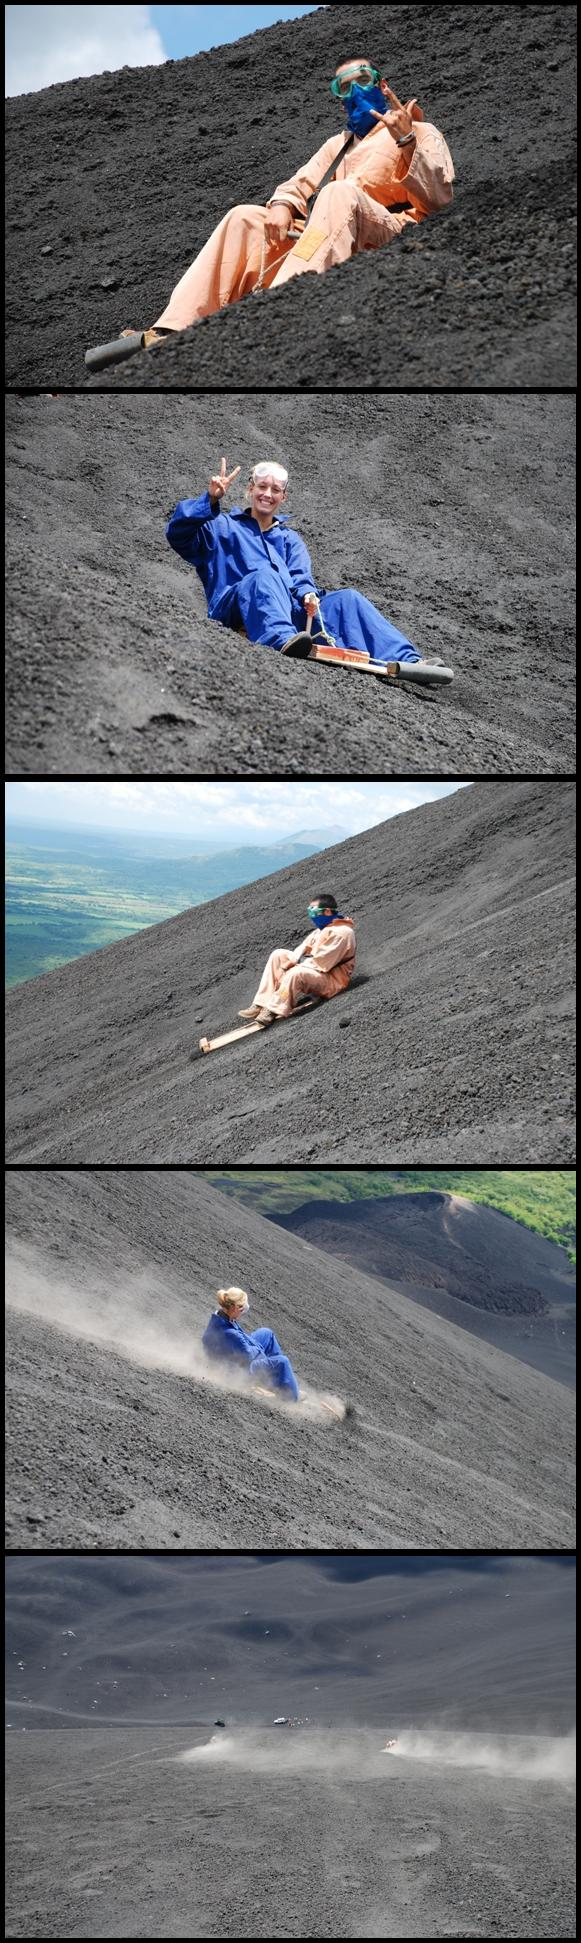 Cerro Negro slide ride